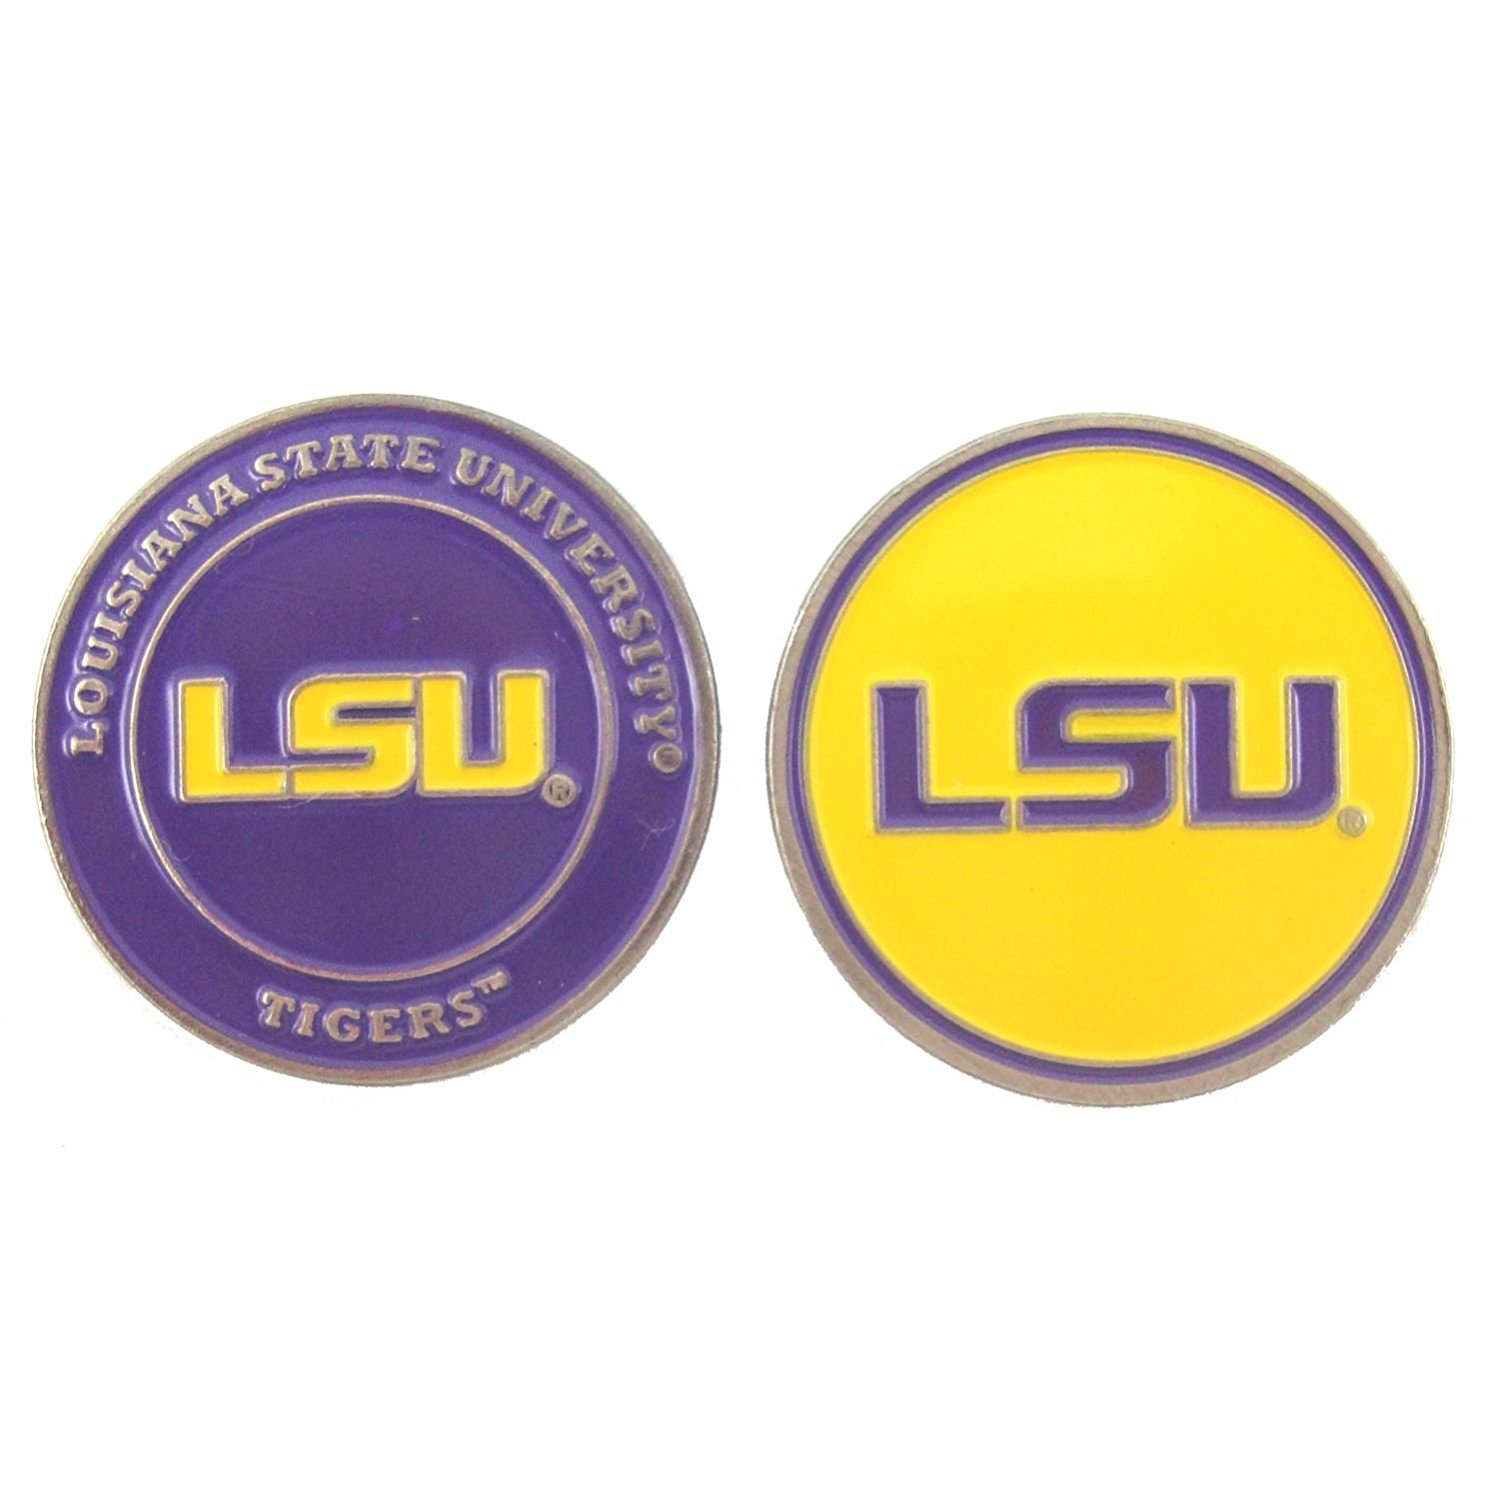 Louisiana State (LSU) Tigers Double-Sided Golf Ball Marker, 1 Team Logo Double Sided Ball Marker By Waggle Pro Shop,USA